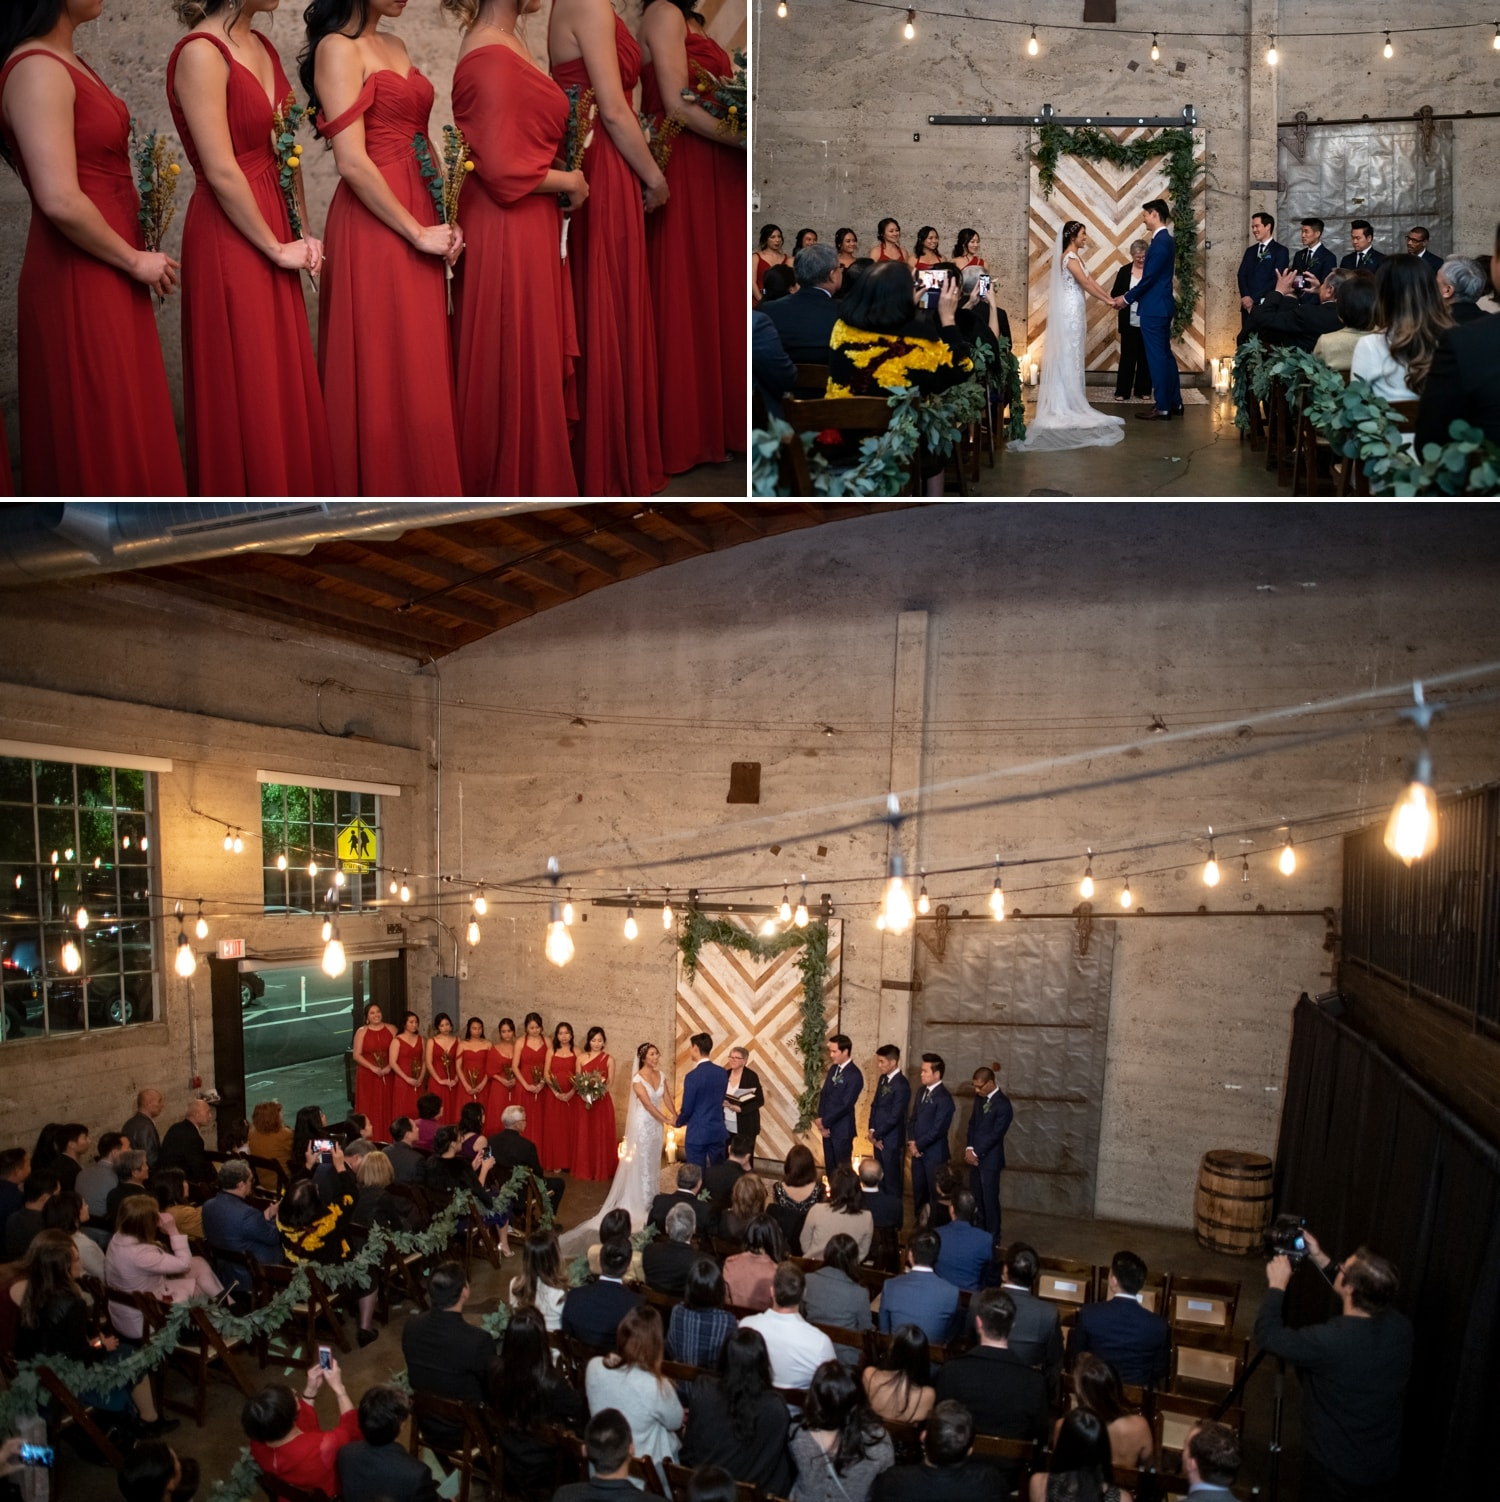 Bride and groom in wedding ceremony at Luce Loft.